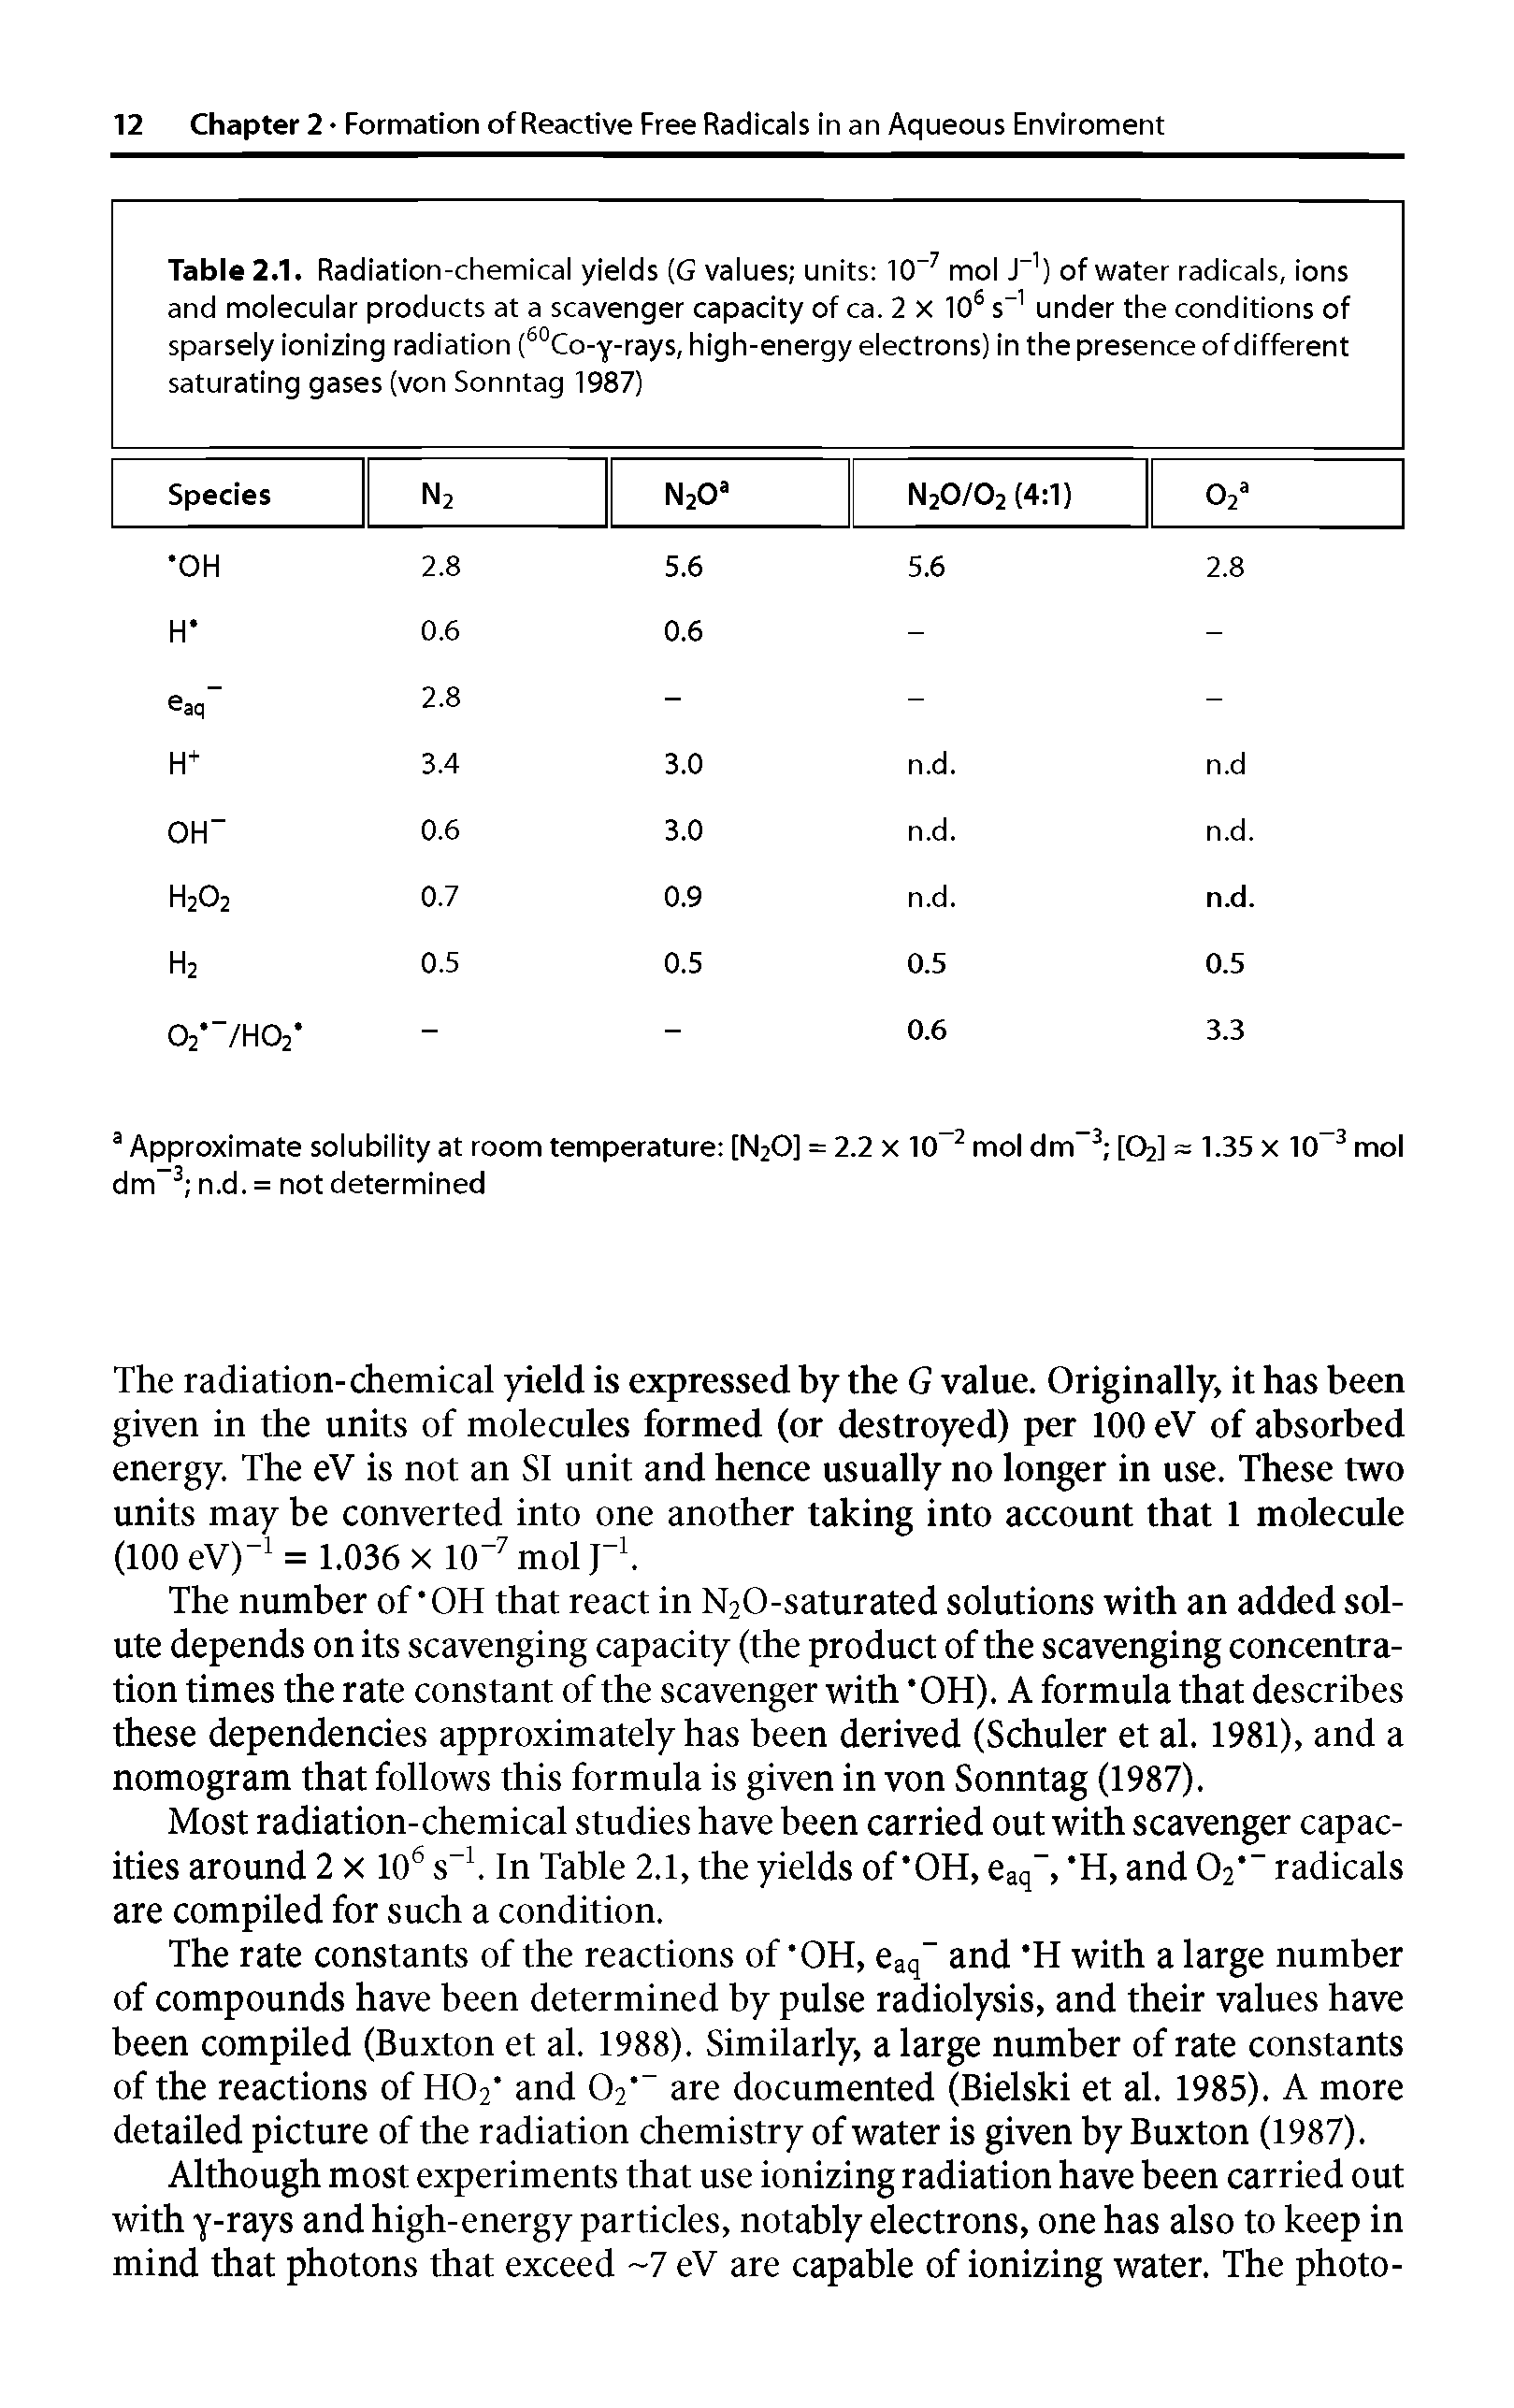 Table 2.1. Radiation-chemical yields (G values units 10-7 mol J-1) of water radicals, ions and molecular products at a scavenger capacity of ca. 2 x 10s s-1 under the conditions of sparsely ionizing radiation (60Co-y-rays, high-energy electrons) in the presence of different saturating gases (von Sonntag 1987)...